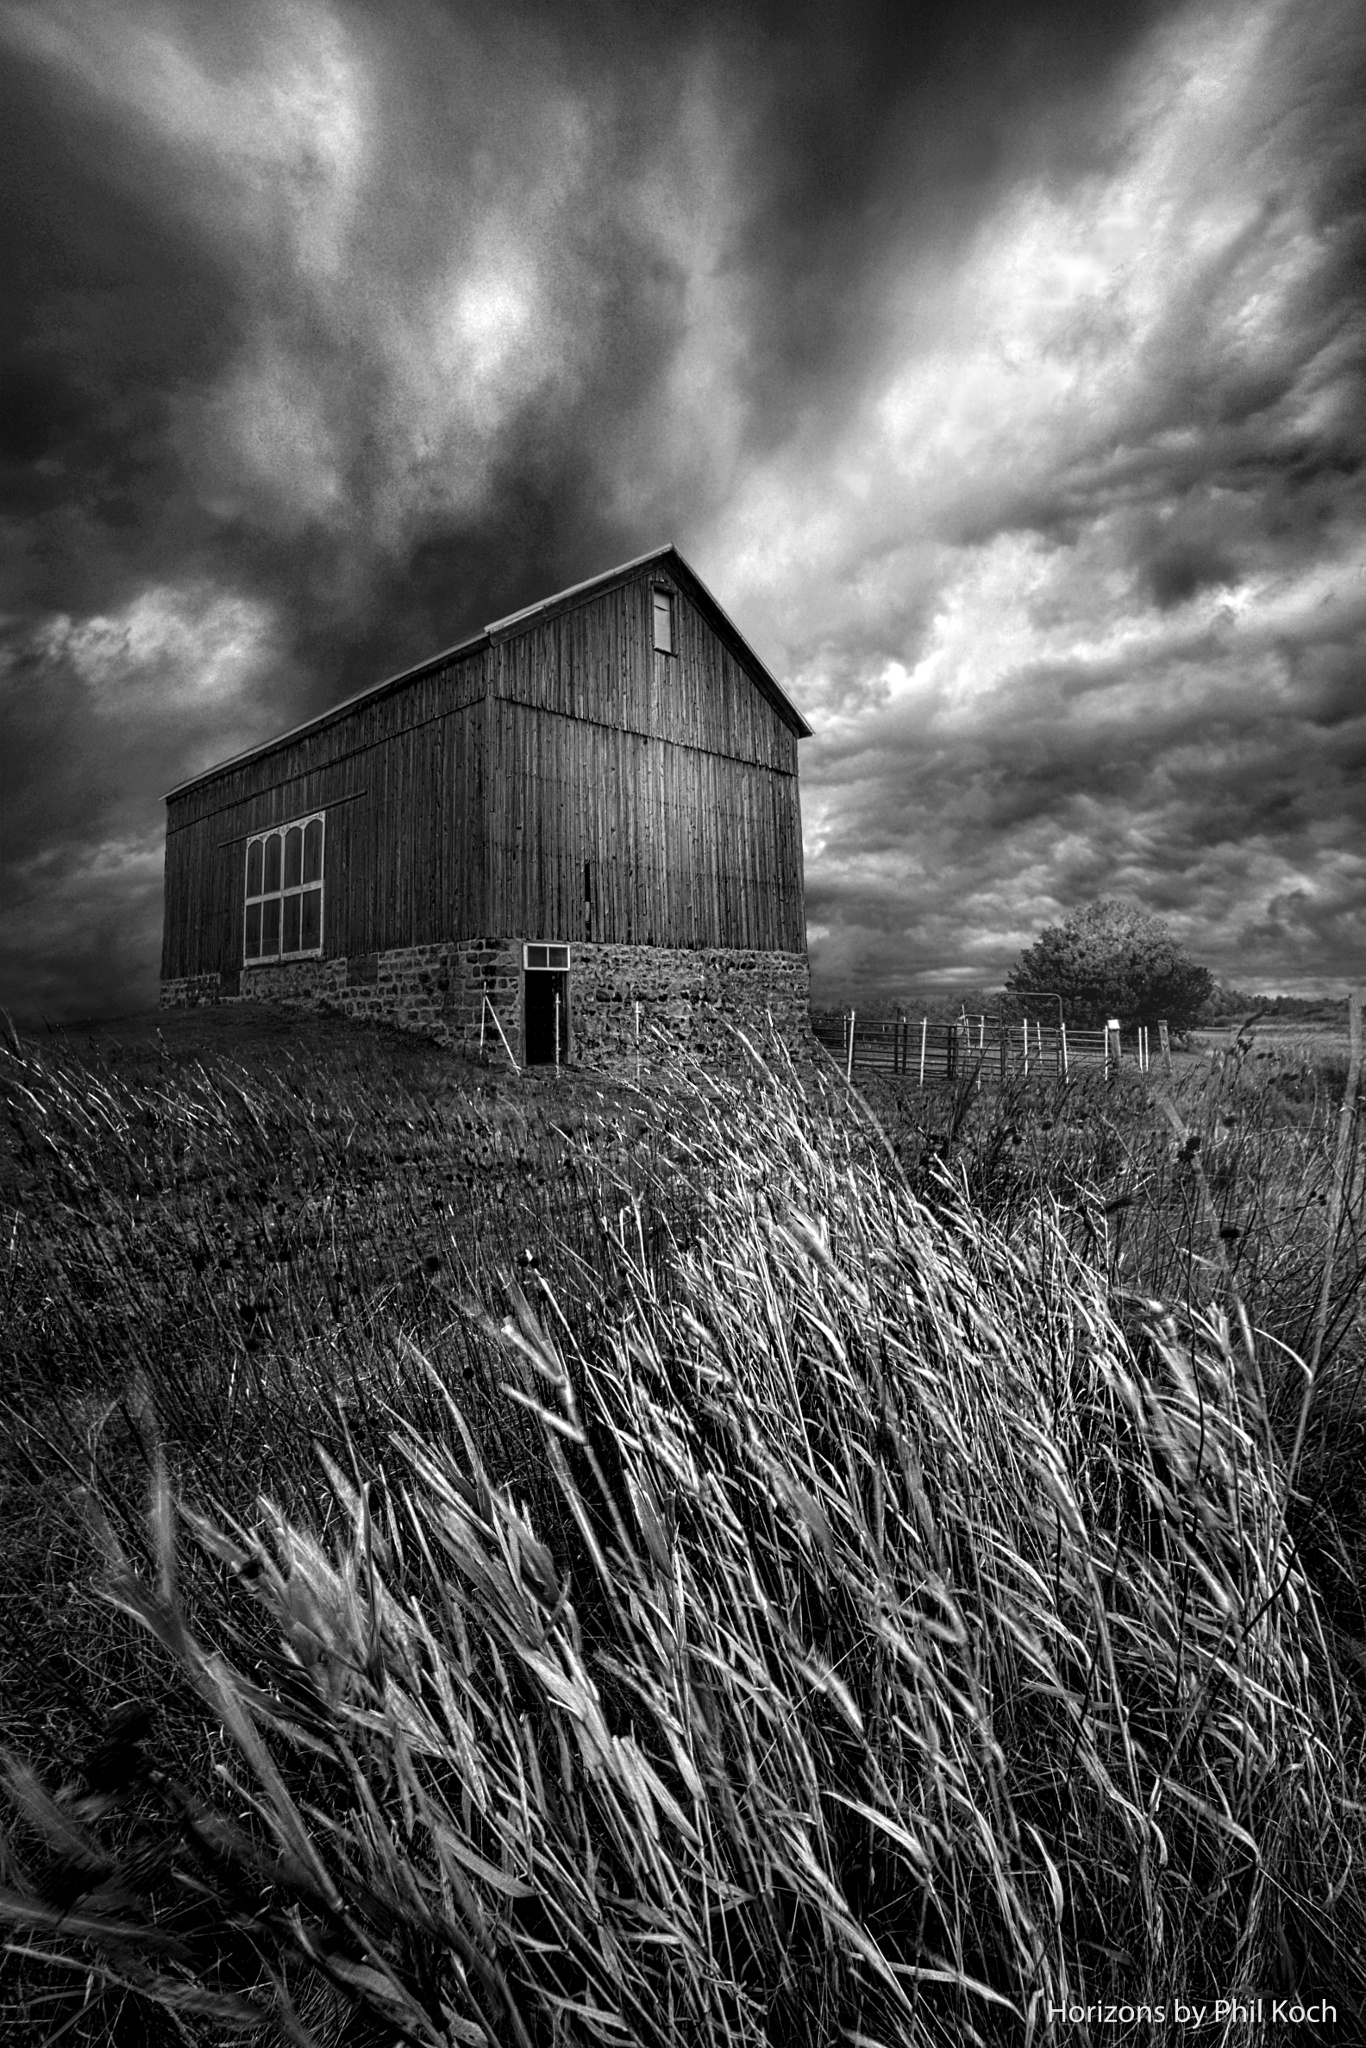 The Winds of Change by PhilKoch